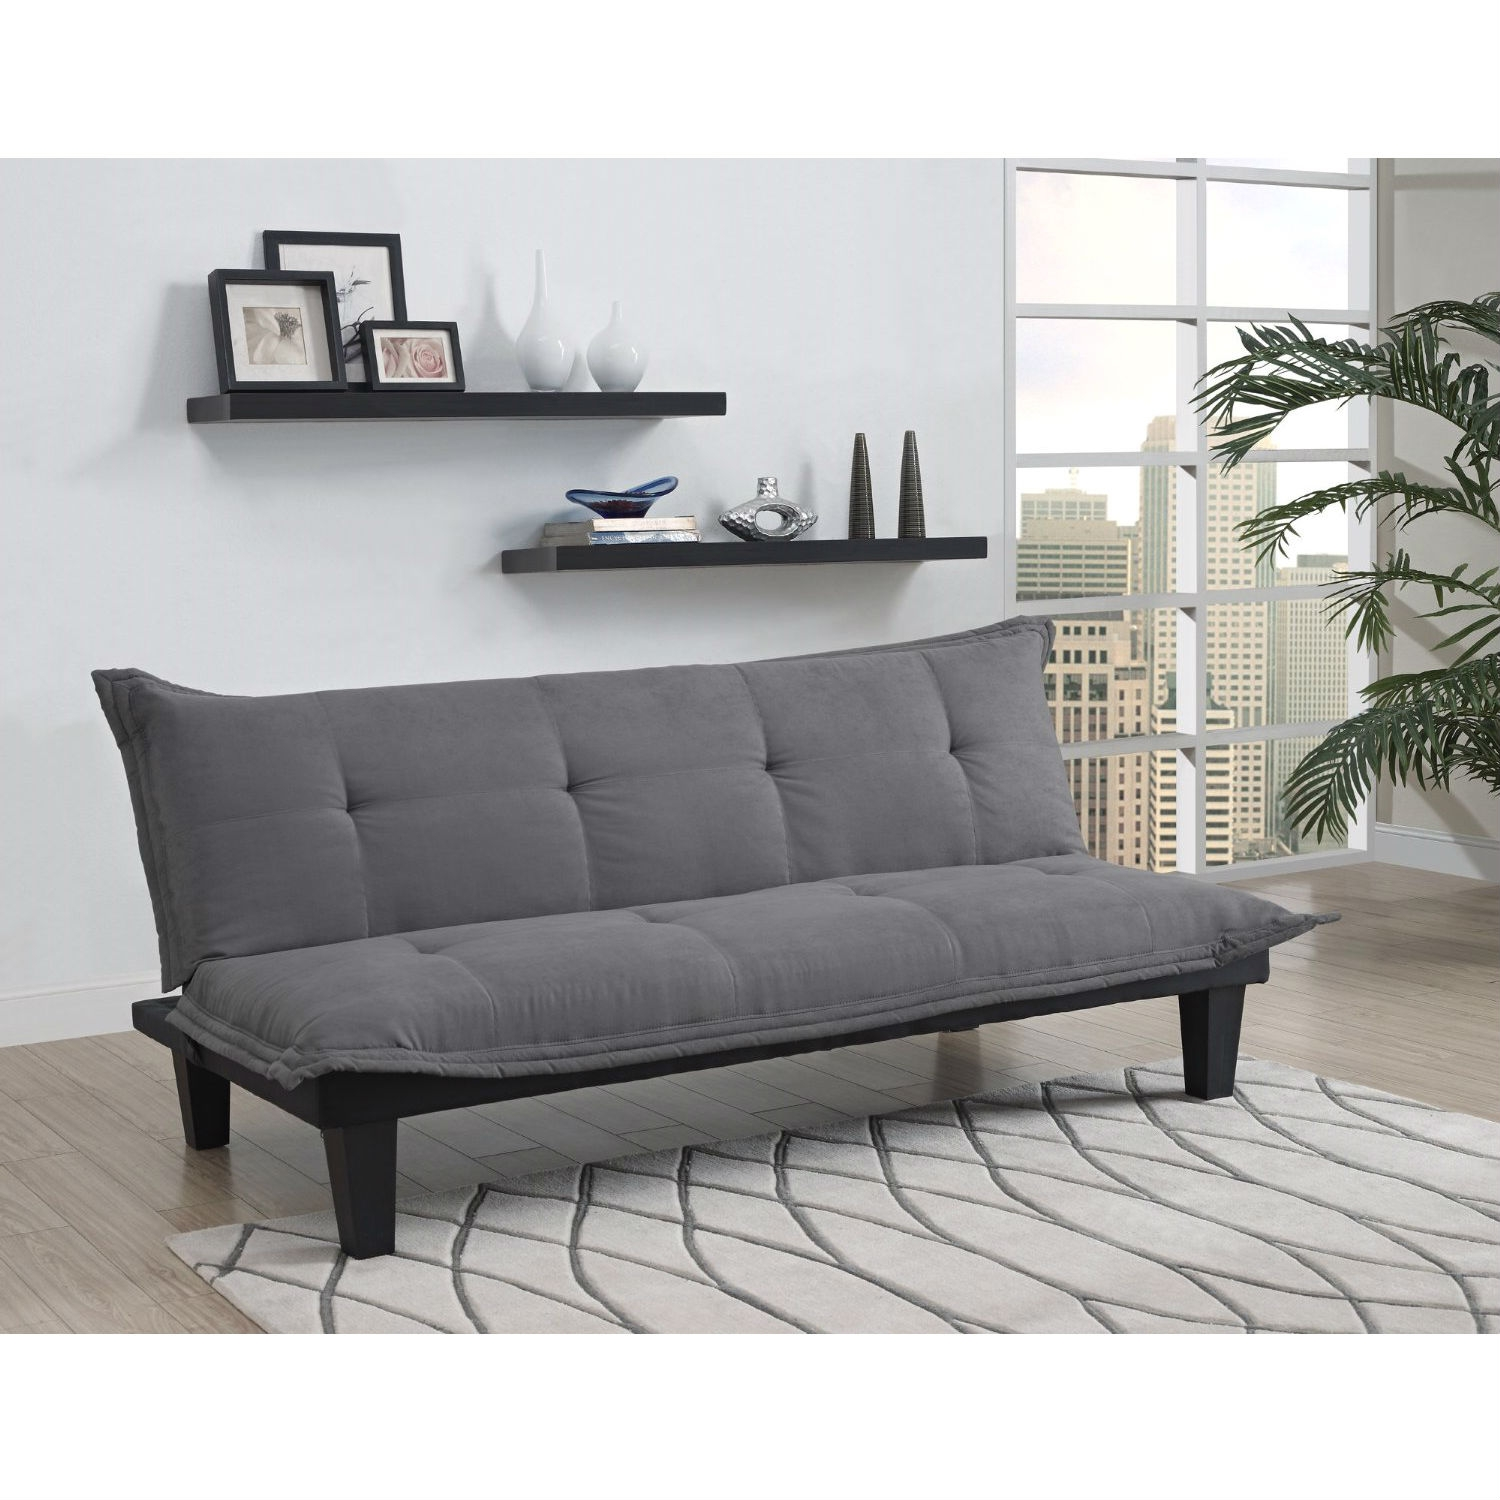 futon style living room warm neutral paint colors for uk charcoal microfiber click clack sofa bed lounger retail price 299 00